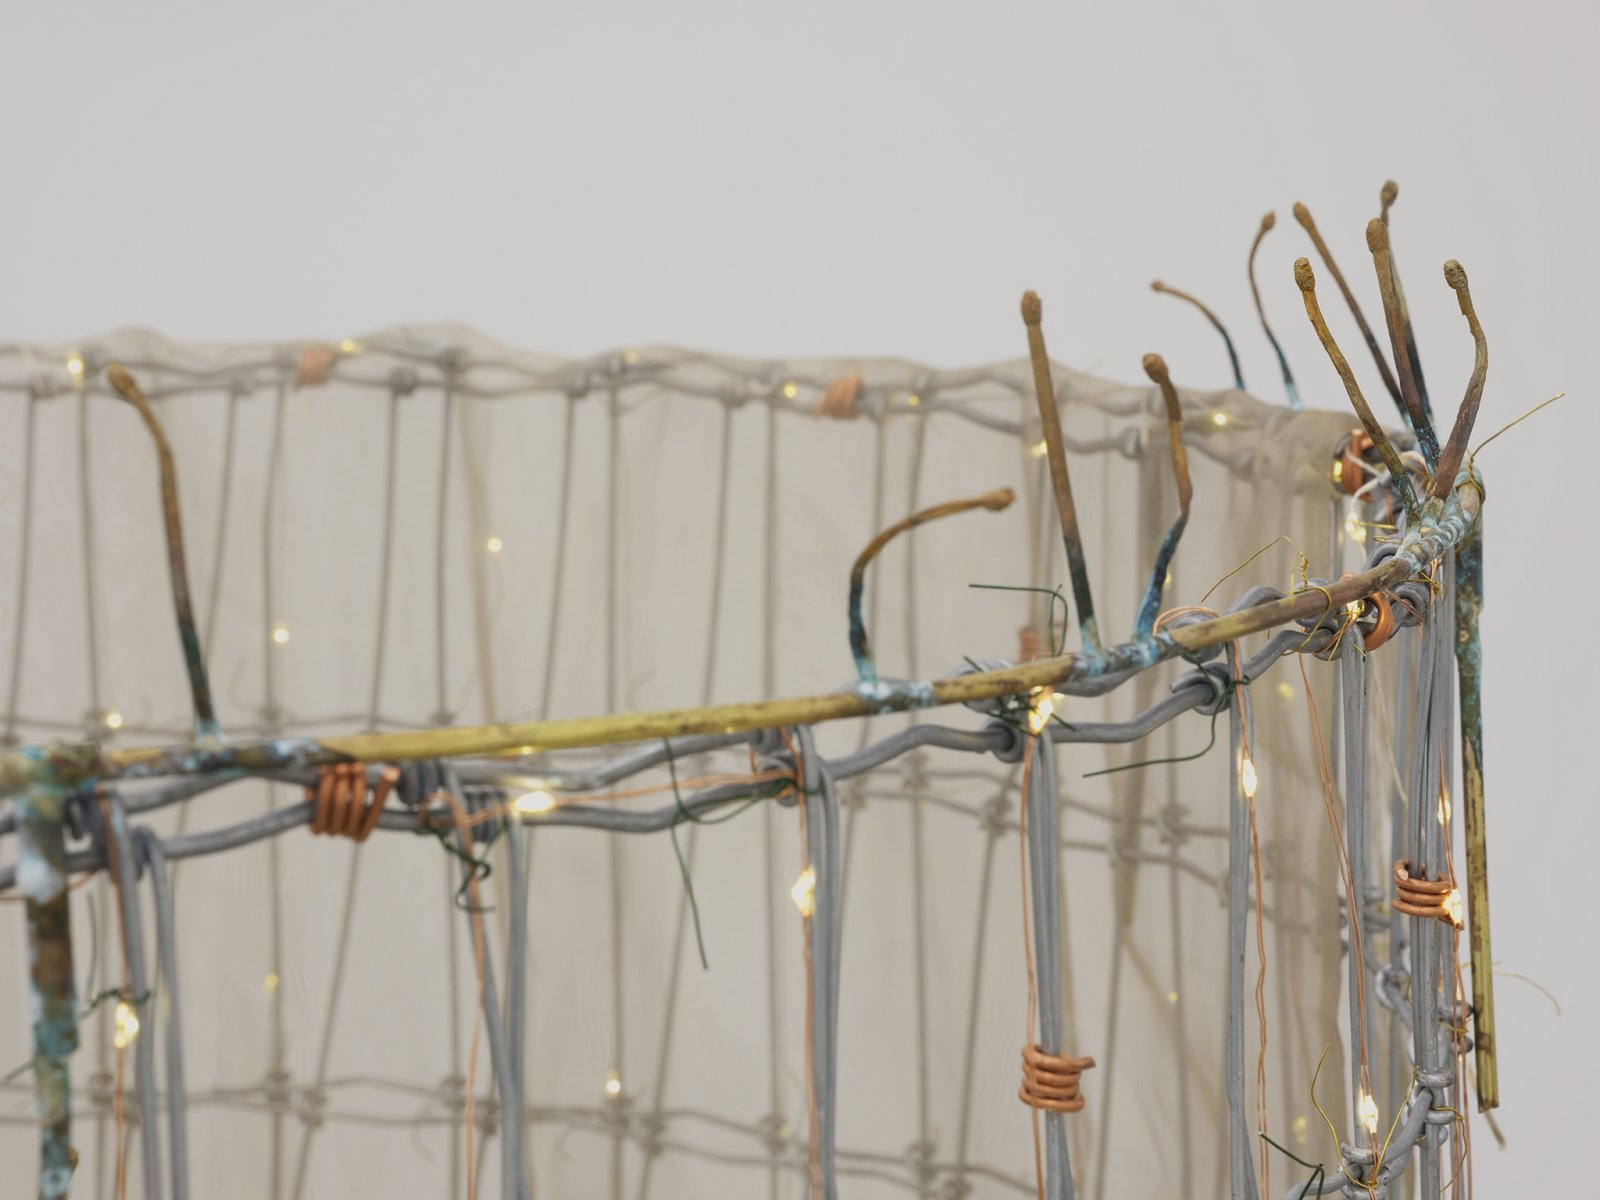 Rochelle Goldberg, Trigger: Towards everything they've ever wanted (detail), 2019, ranch fencing, batteries, fairy lights, polyester curtain, aluminum, cast bronze matches, copper wire, 51 x 51 x 44 in. (130 x 130 x 112 cm) by Rochelle Goldberg